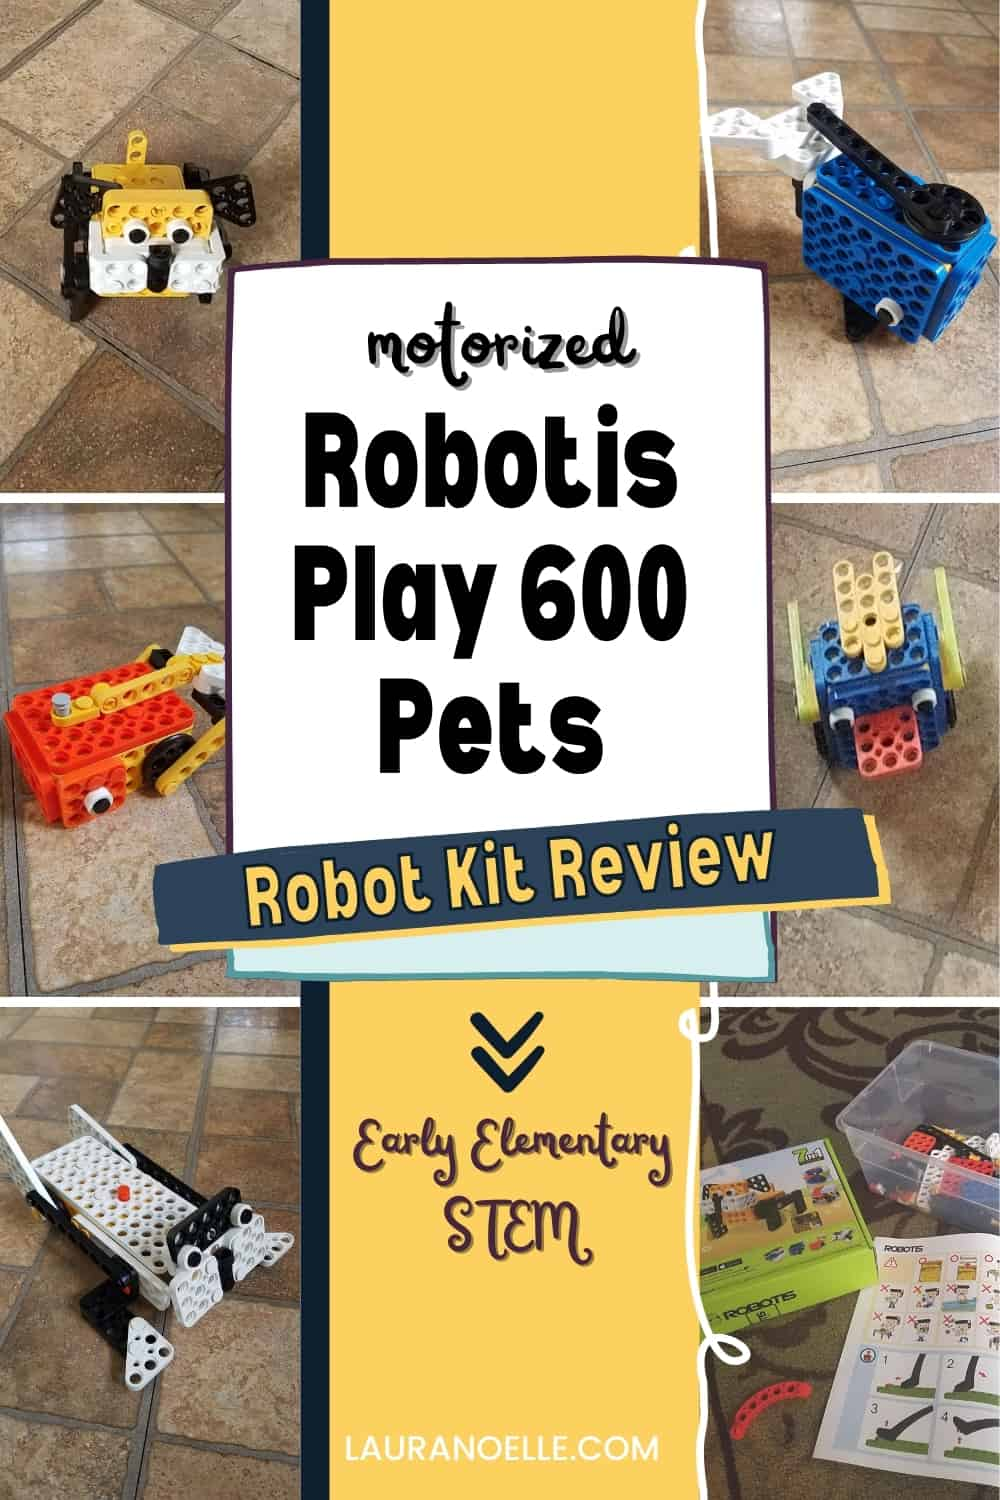 Have your kids ever wanted to build a robot? Now even young children can experience the hands-on wonder of creating a robotic pet!